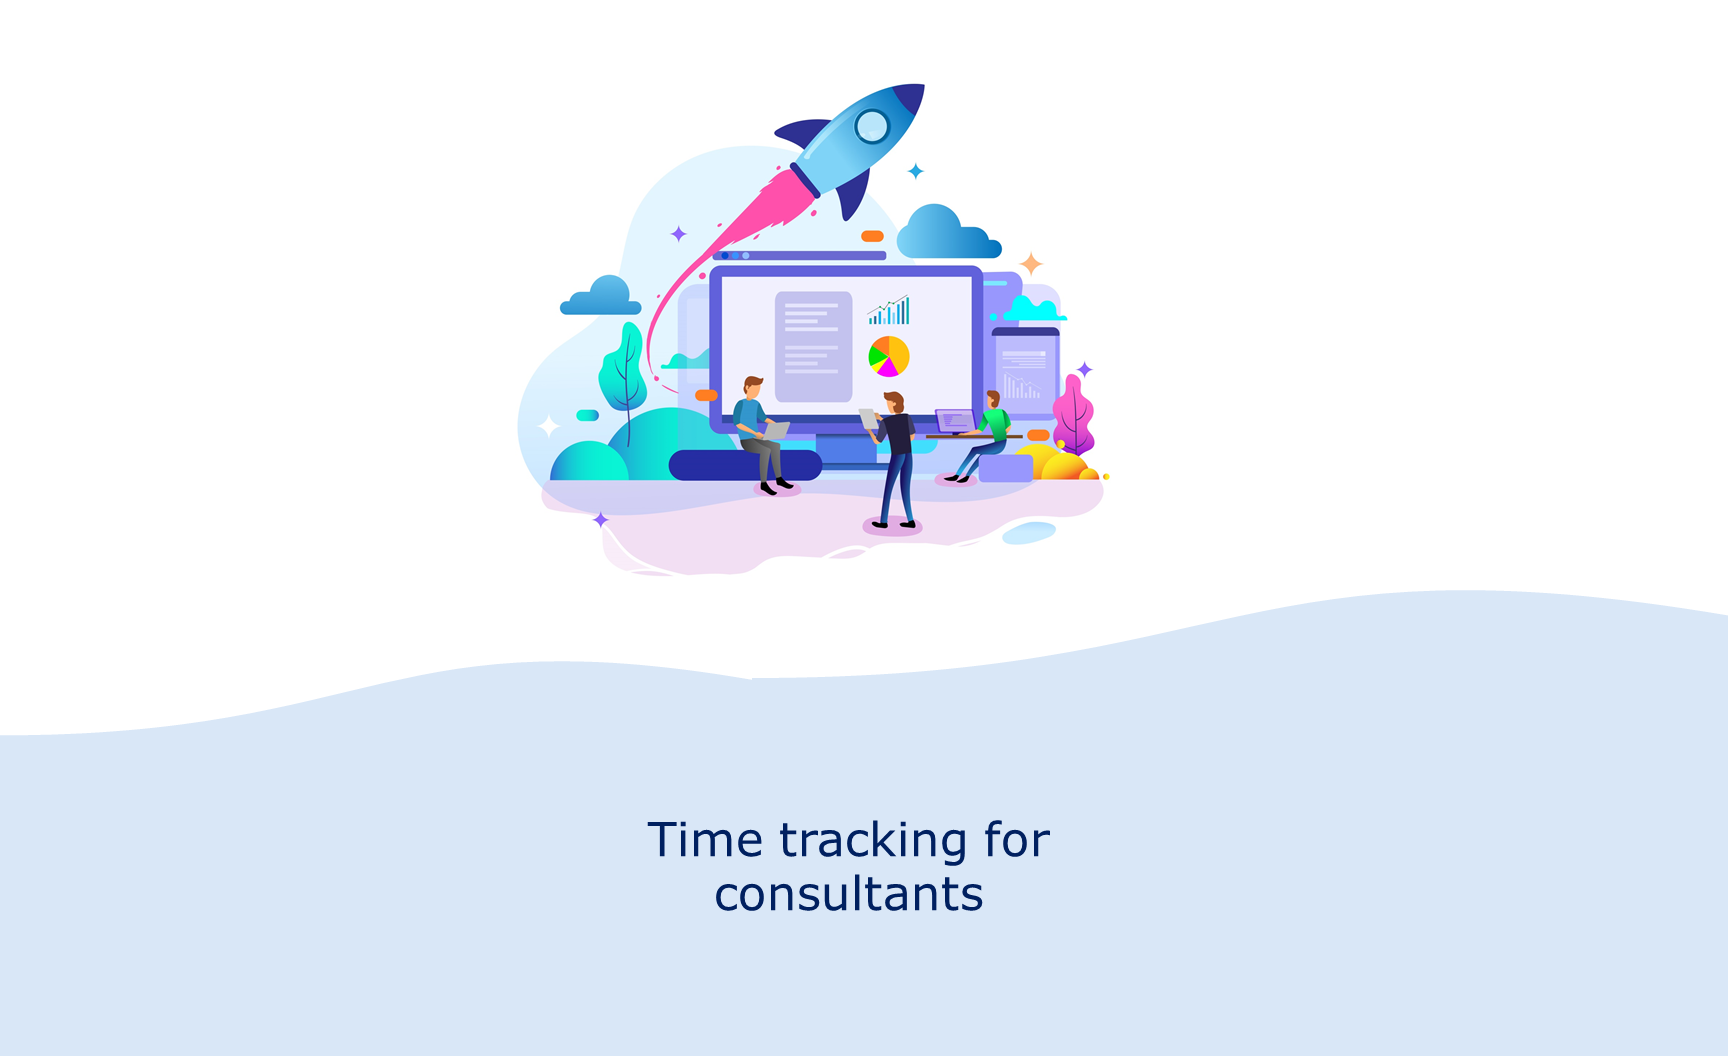 Time tracking for consultants